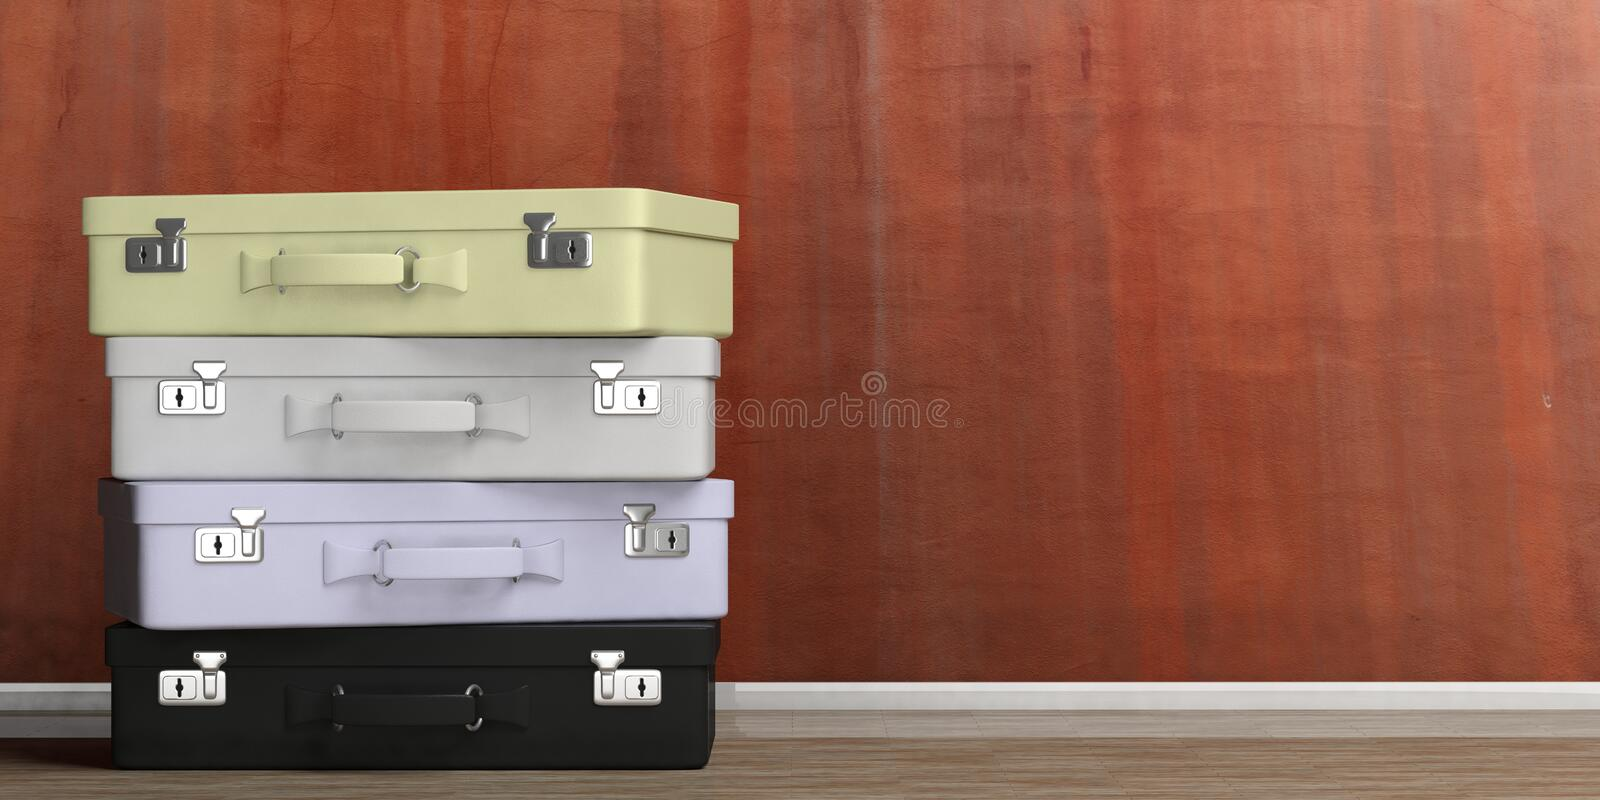 Travel suitcases stack - stucco wall background. 3d illustration vector illustration